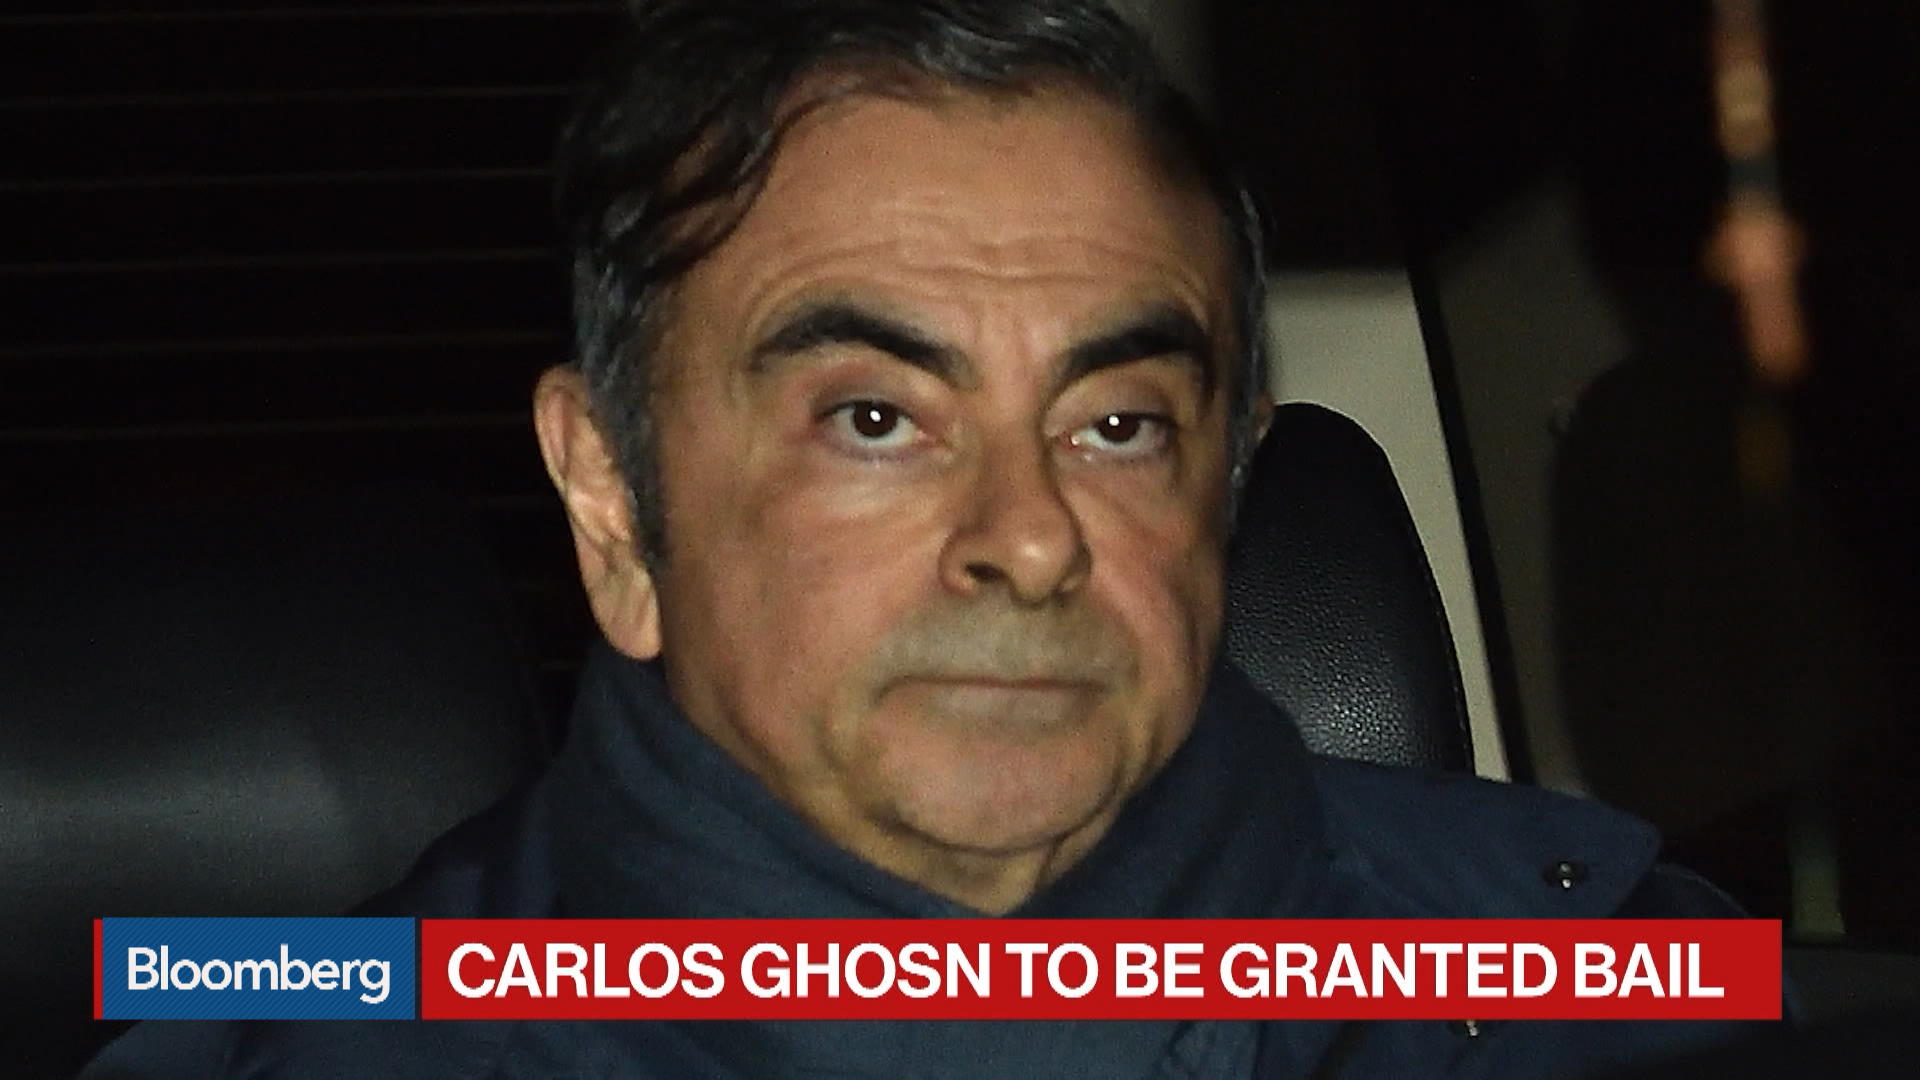 Carlos Ghosn to Be Granted Bail